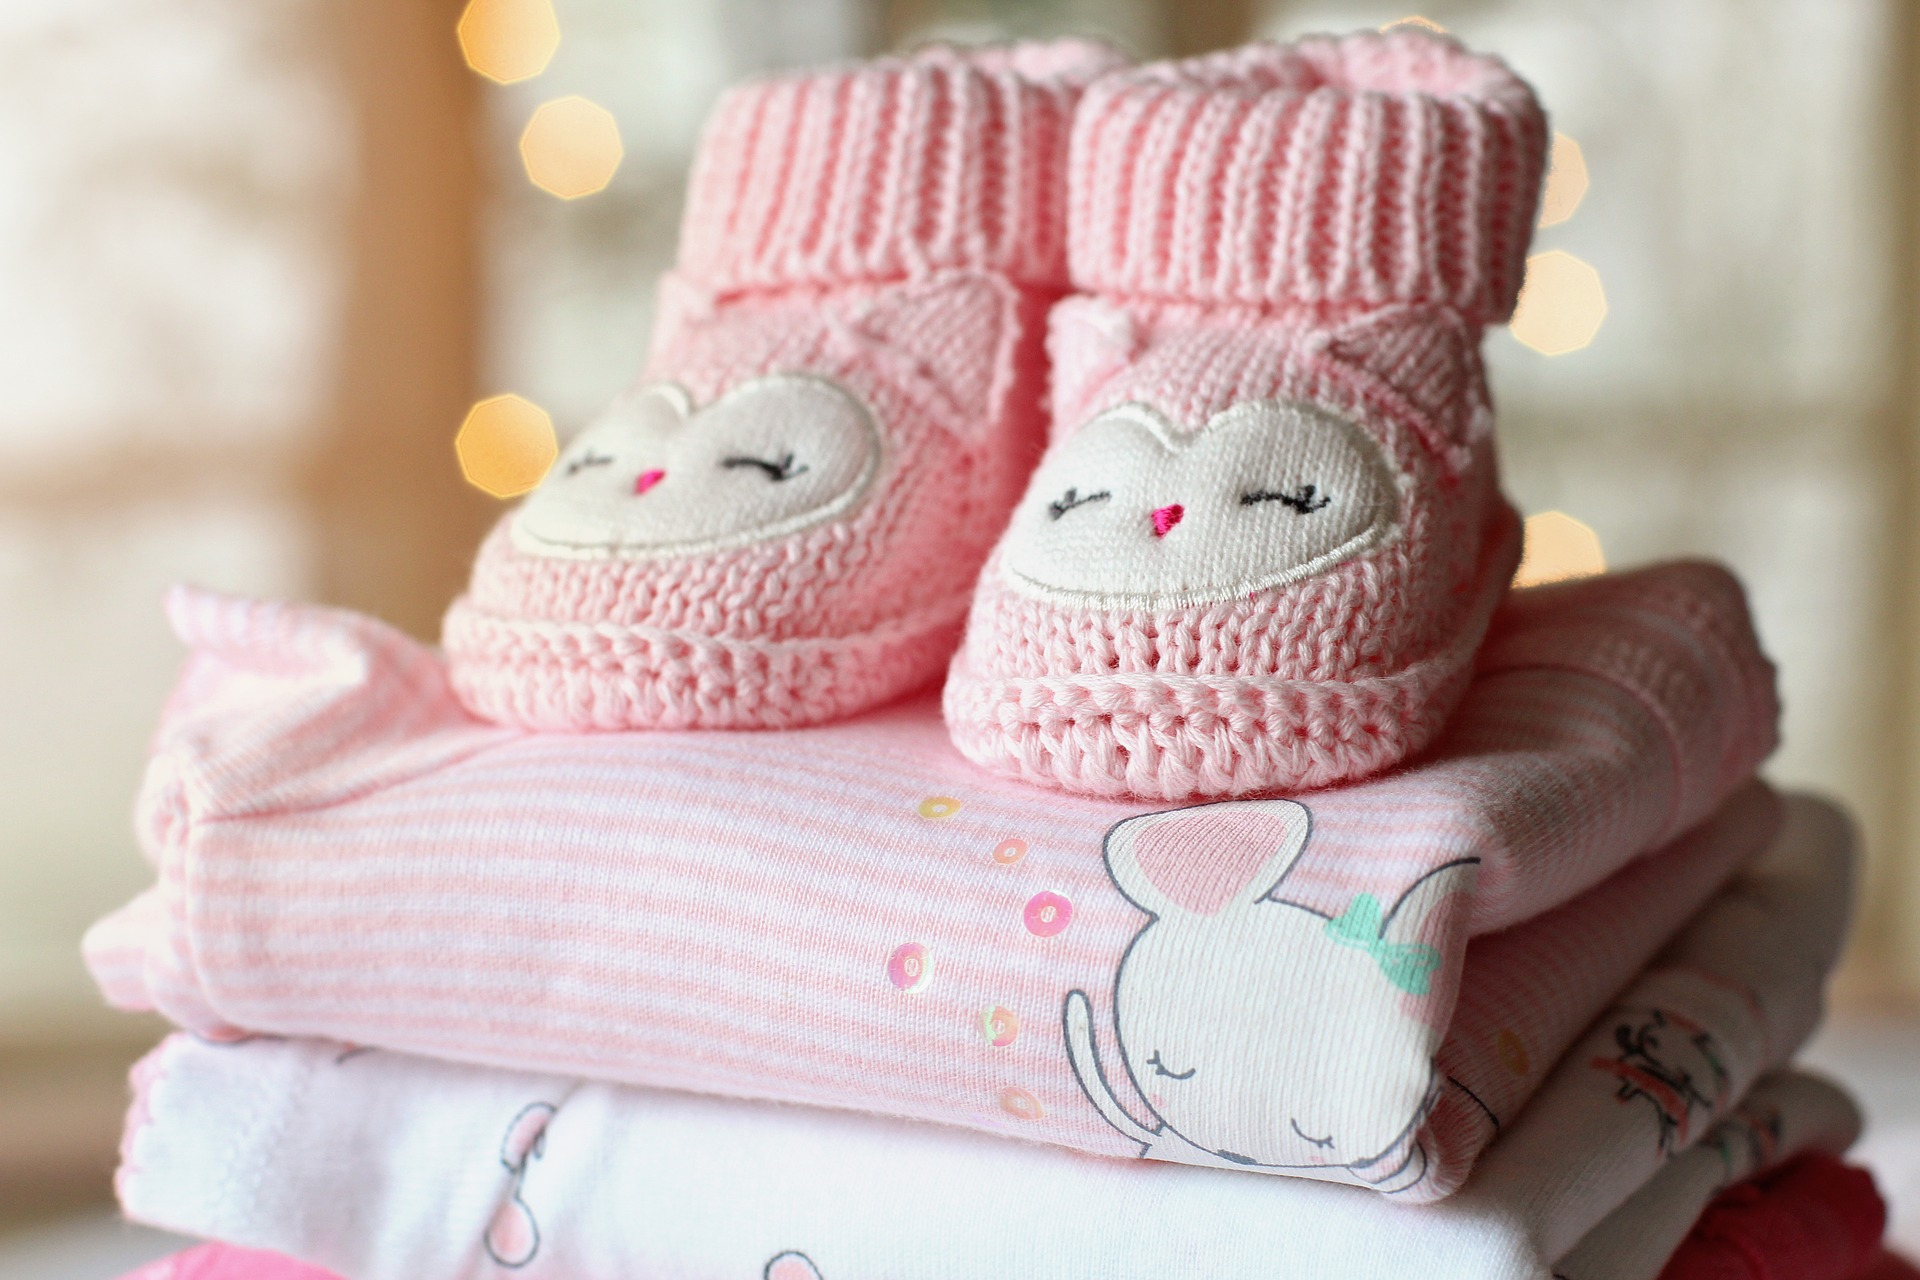 What to pack in Hospital bag for delivery and baby